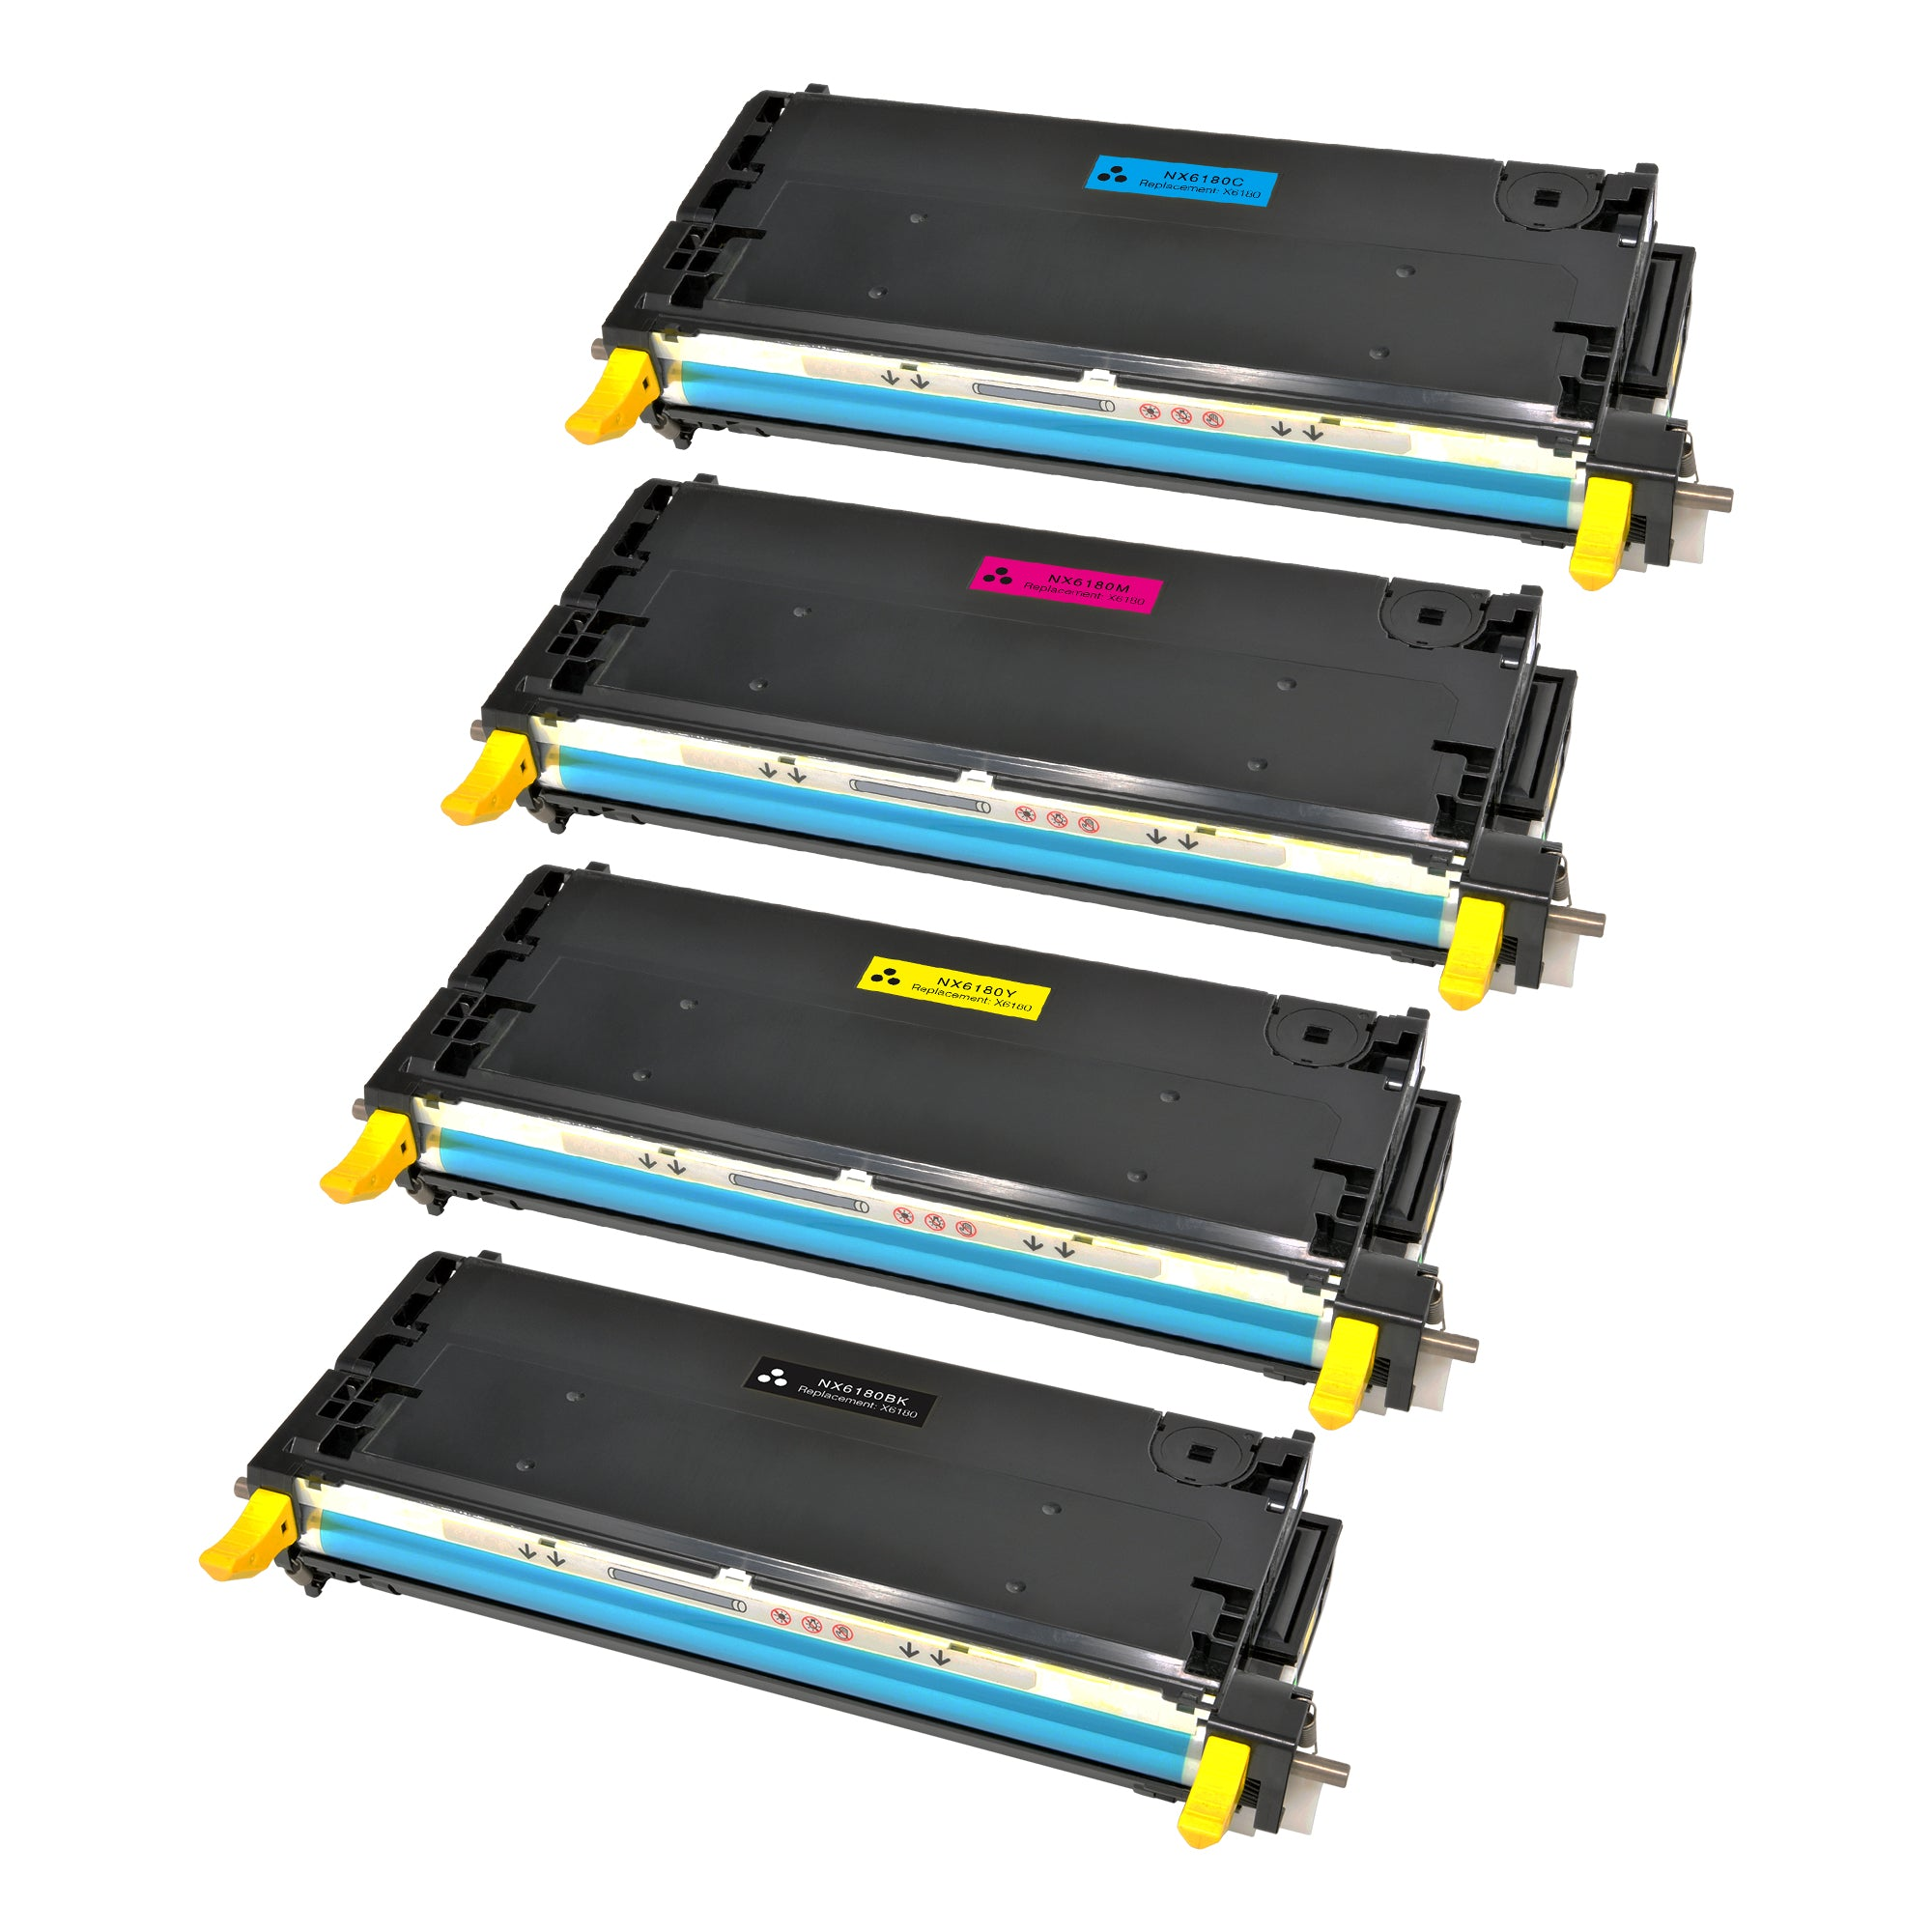 Arthur Imaging Compatible Toner Cartridge Replacement for Xerox Phaser 6180 Set (1 Black, 1 Cyan, 1 Magenta, 1 Yellow, 4-Pack)